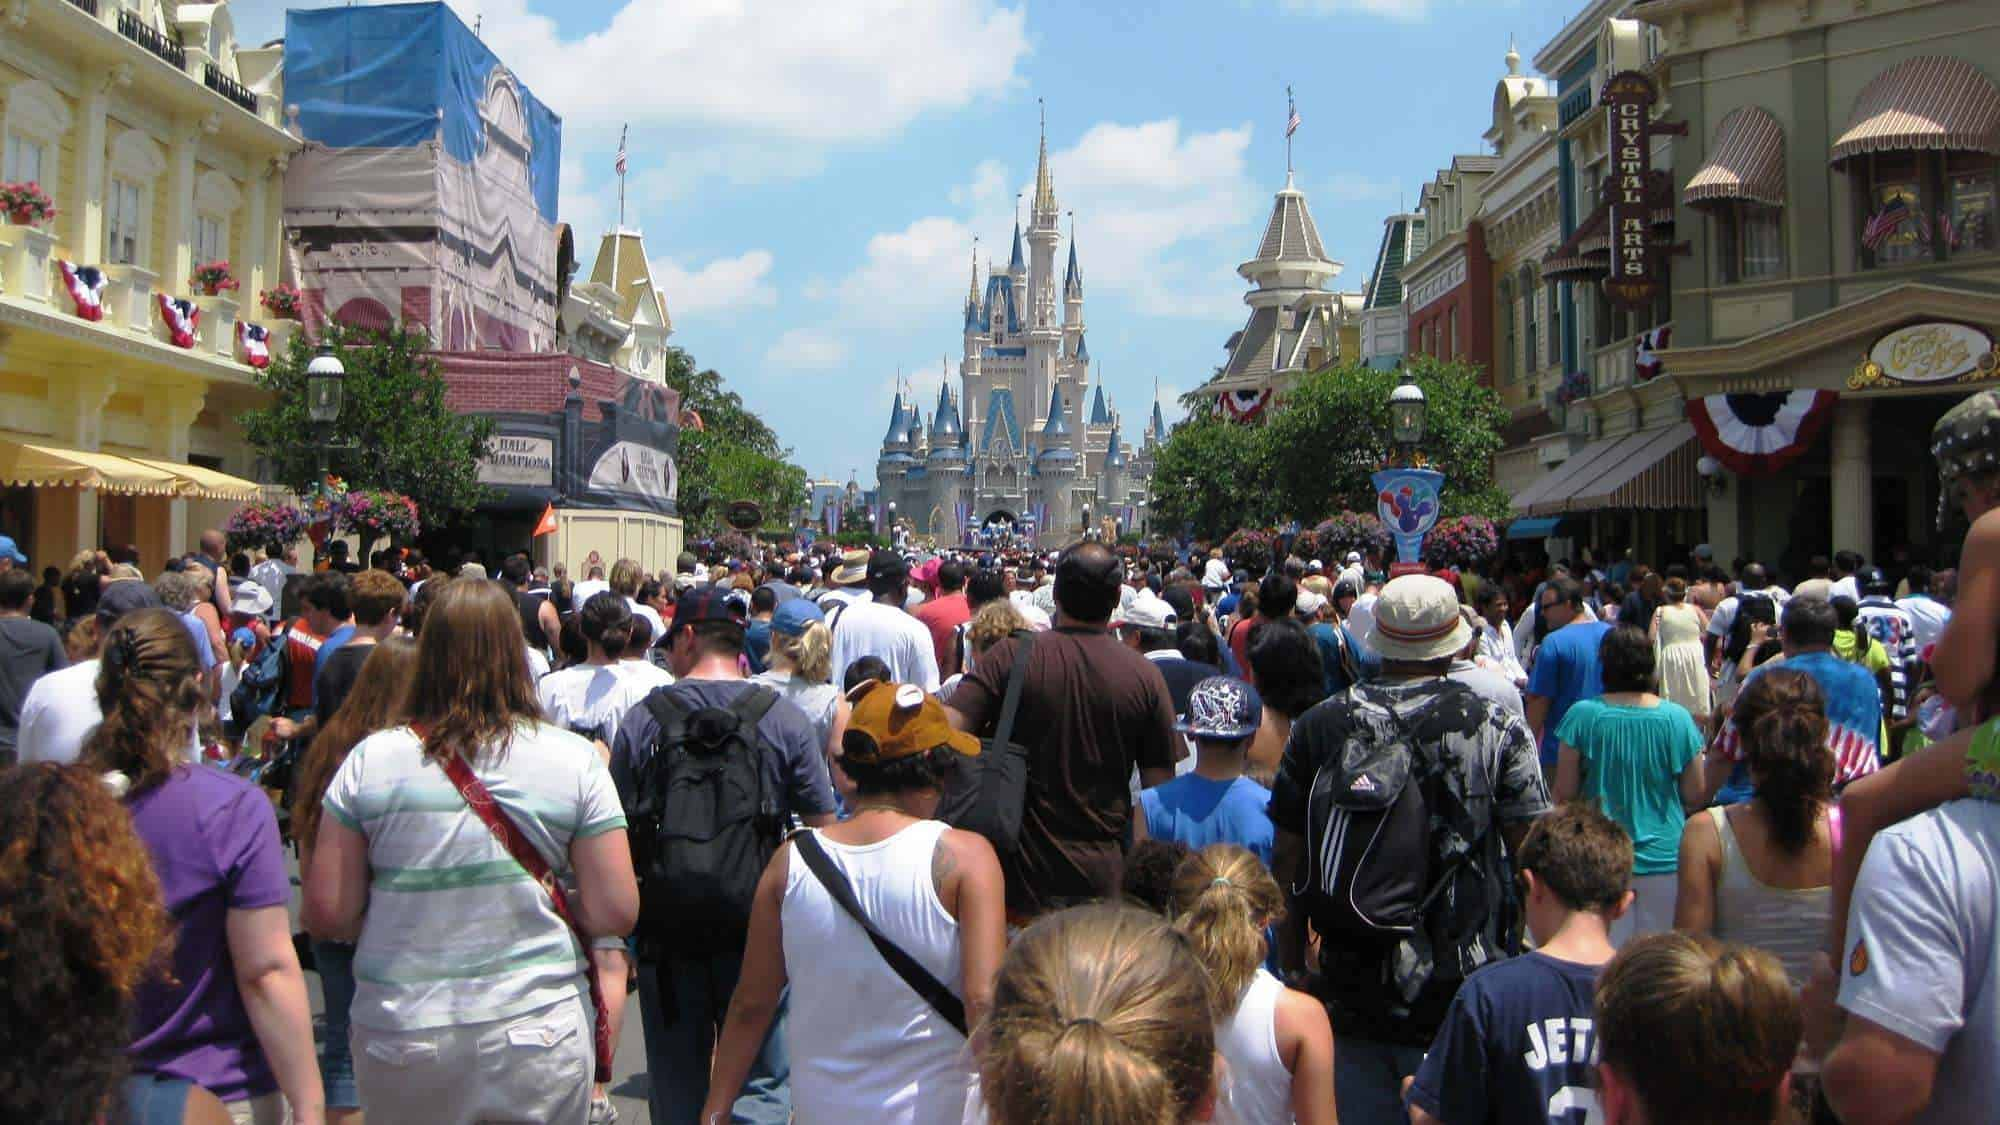 Disney now offers upcharge FastPasses